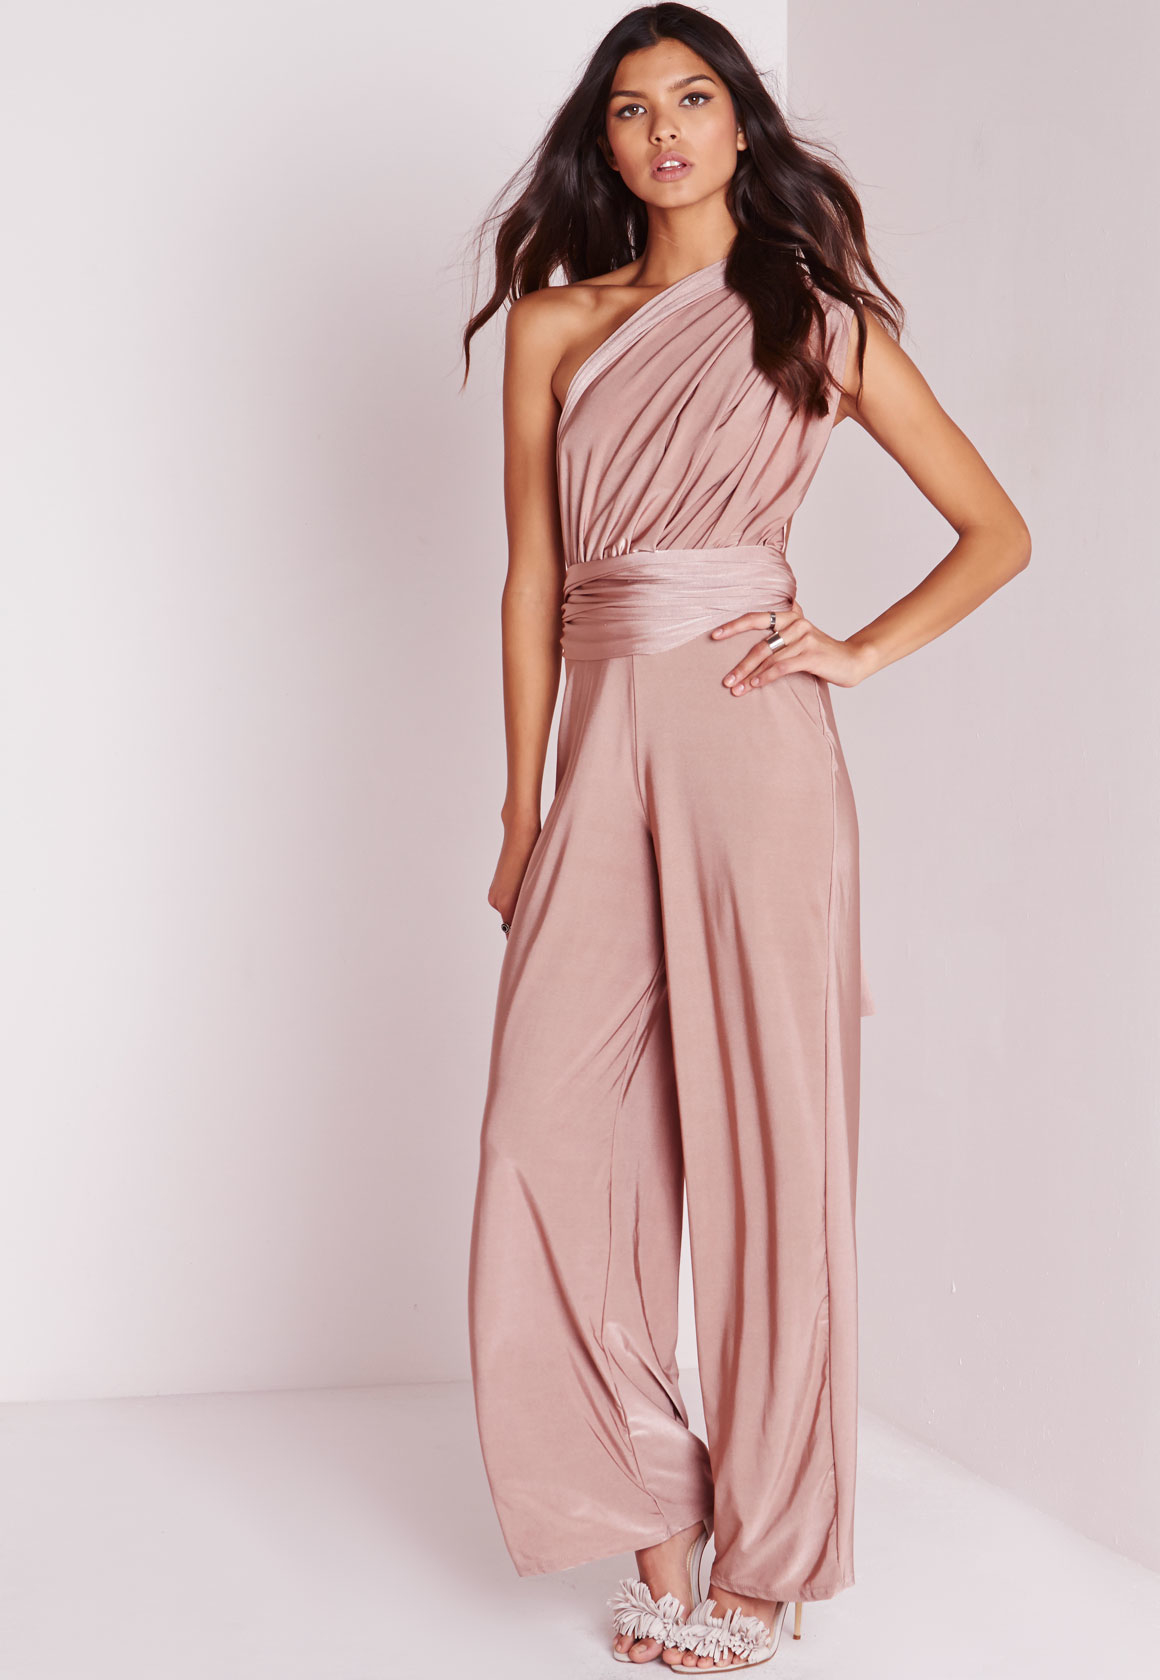 0a2bda1888d7 Lyst - Missguided Do It Anyway Multiway Slinky Jumpsuit Pink in Pink